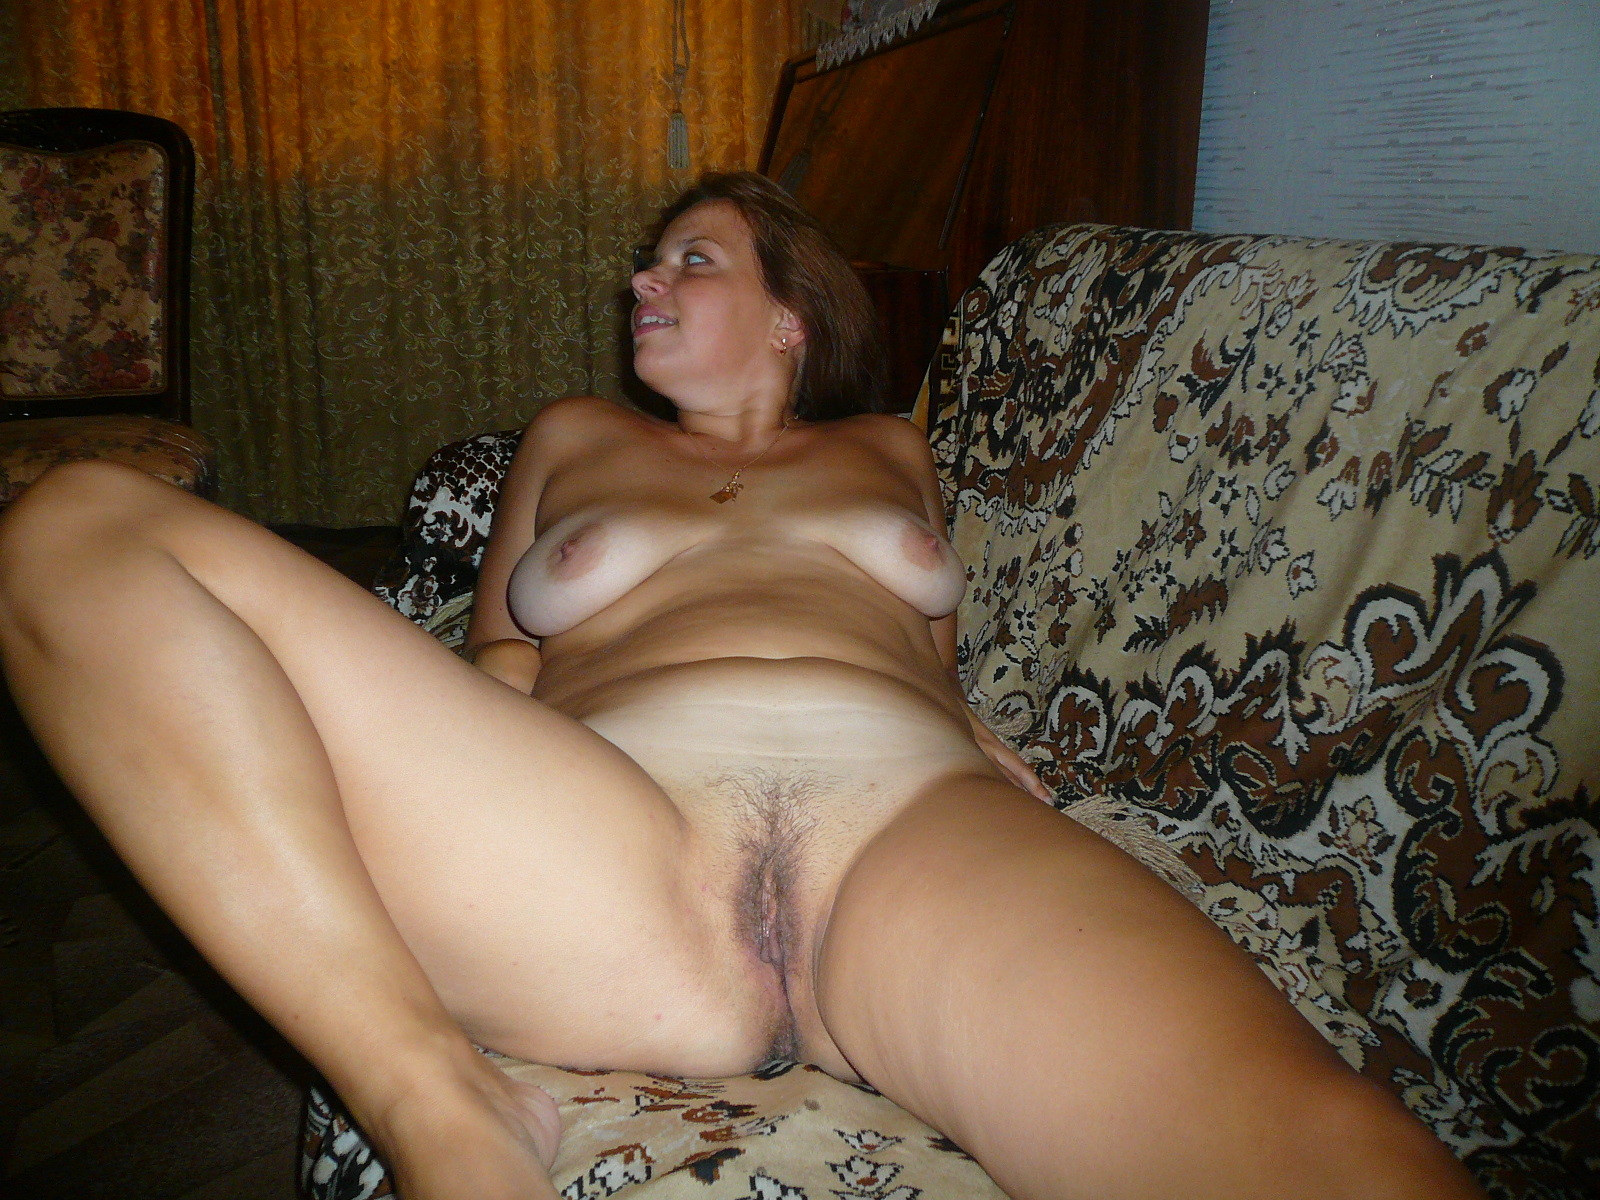 Nude latina colorado ladies